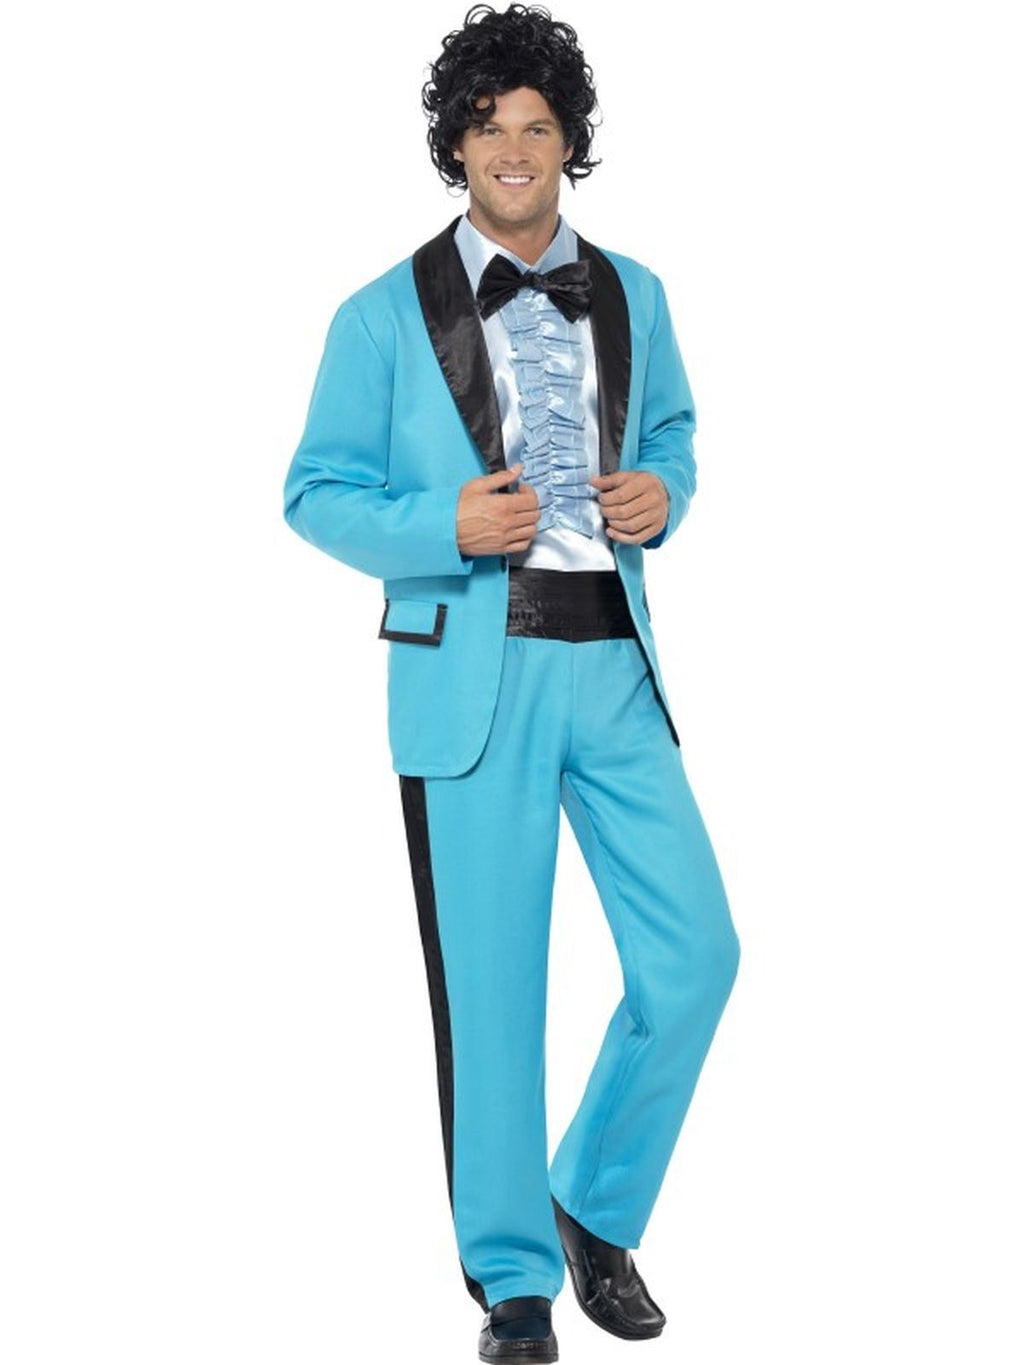 80's Prom King Costume